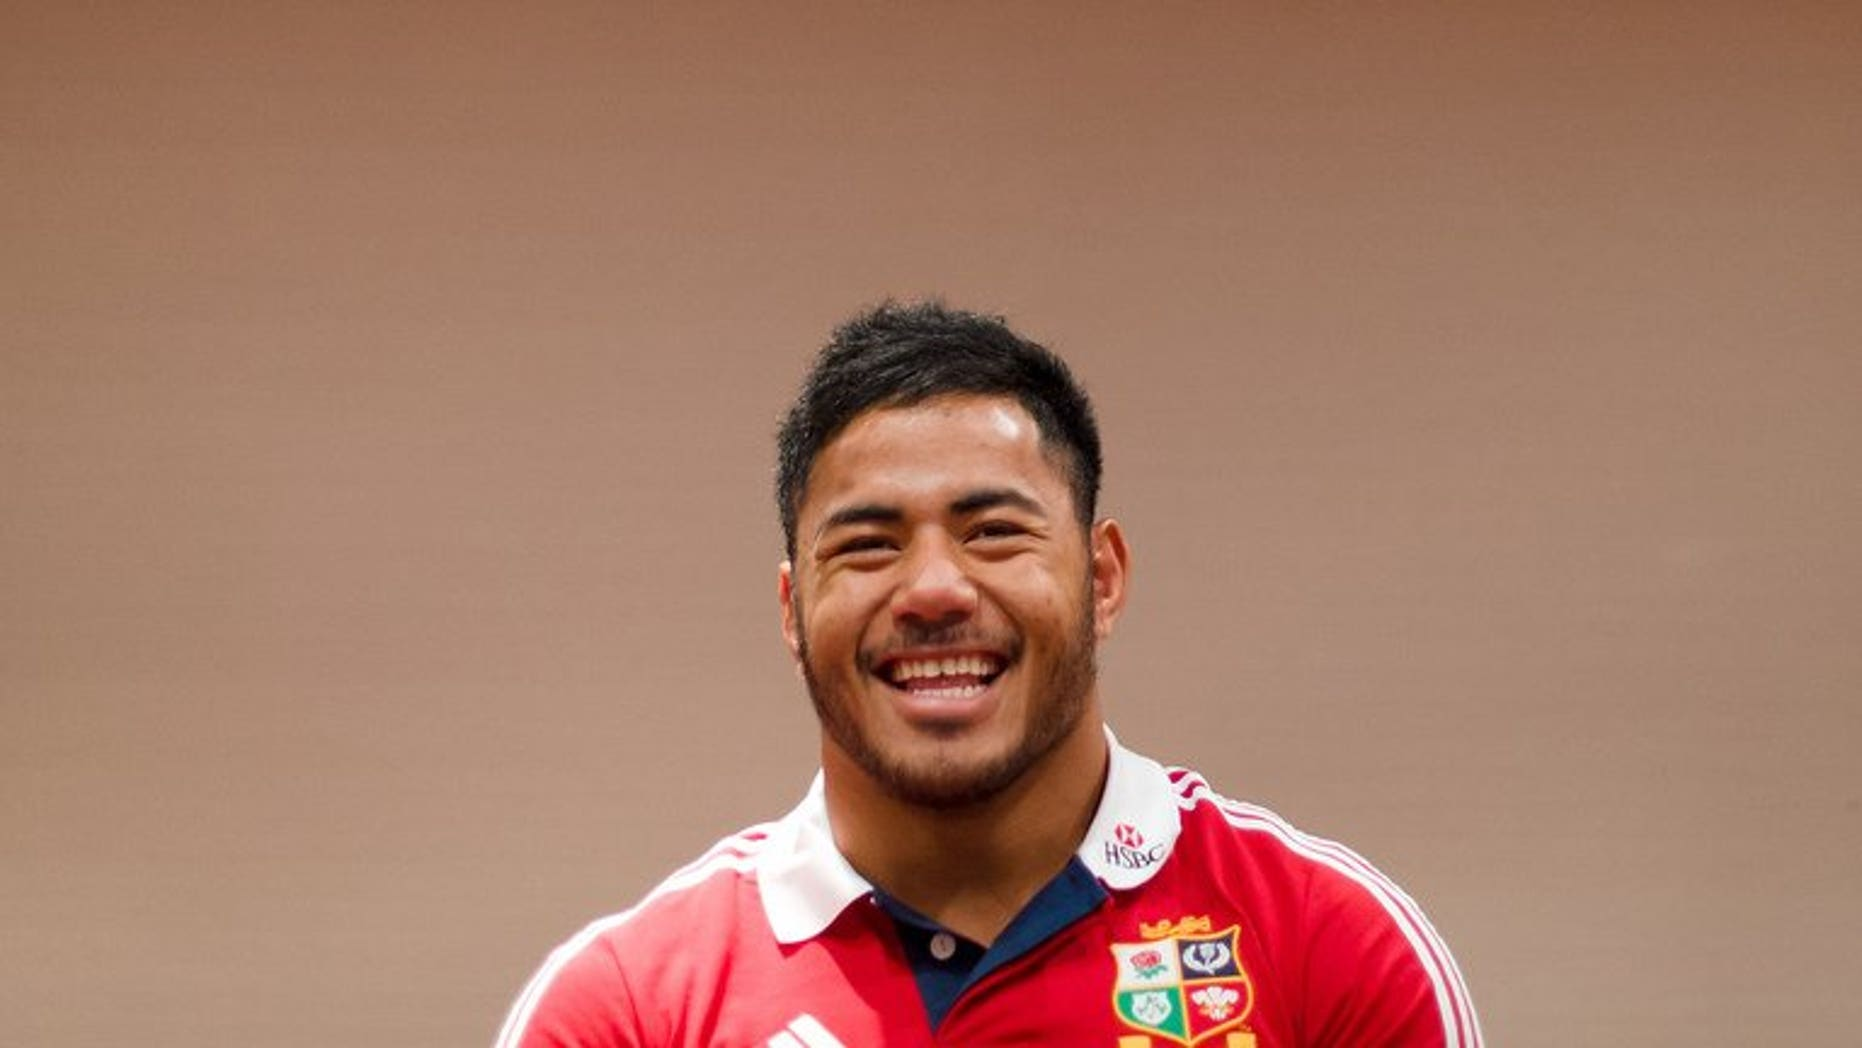 Manu Tuilagi, pictured on May 27, 2013, ended a tricky week making headlines for the right reasons after starring in English Premiership champions Leicester's 31-6 victory at home to Newcastle on Saturday.